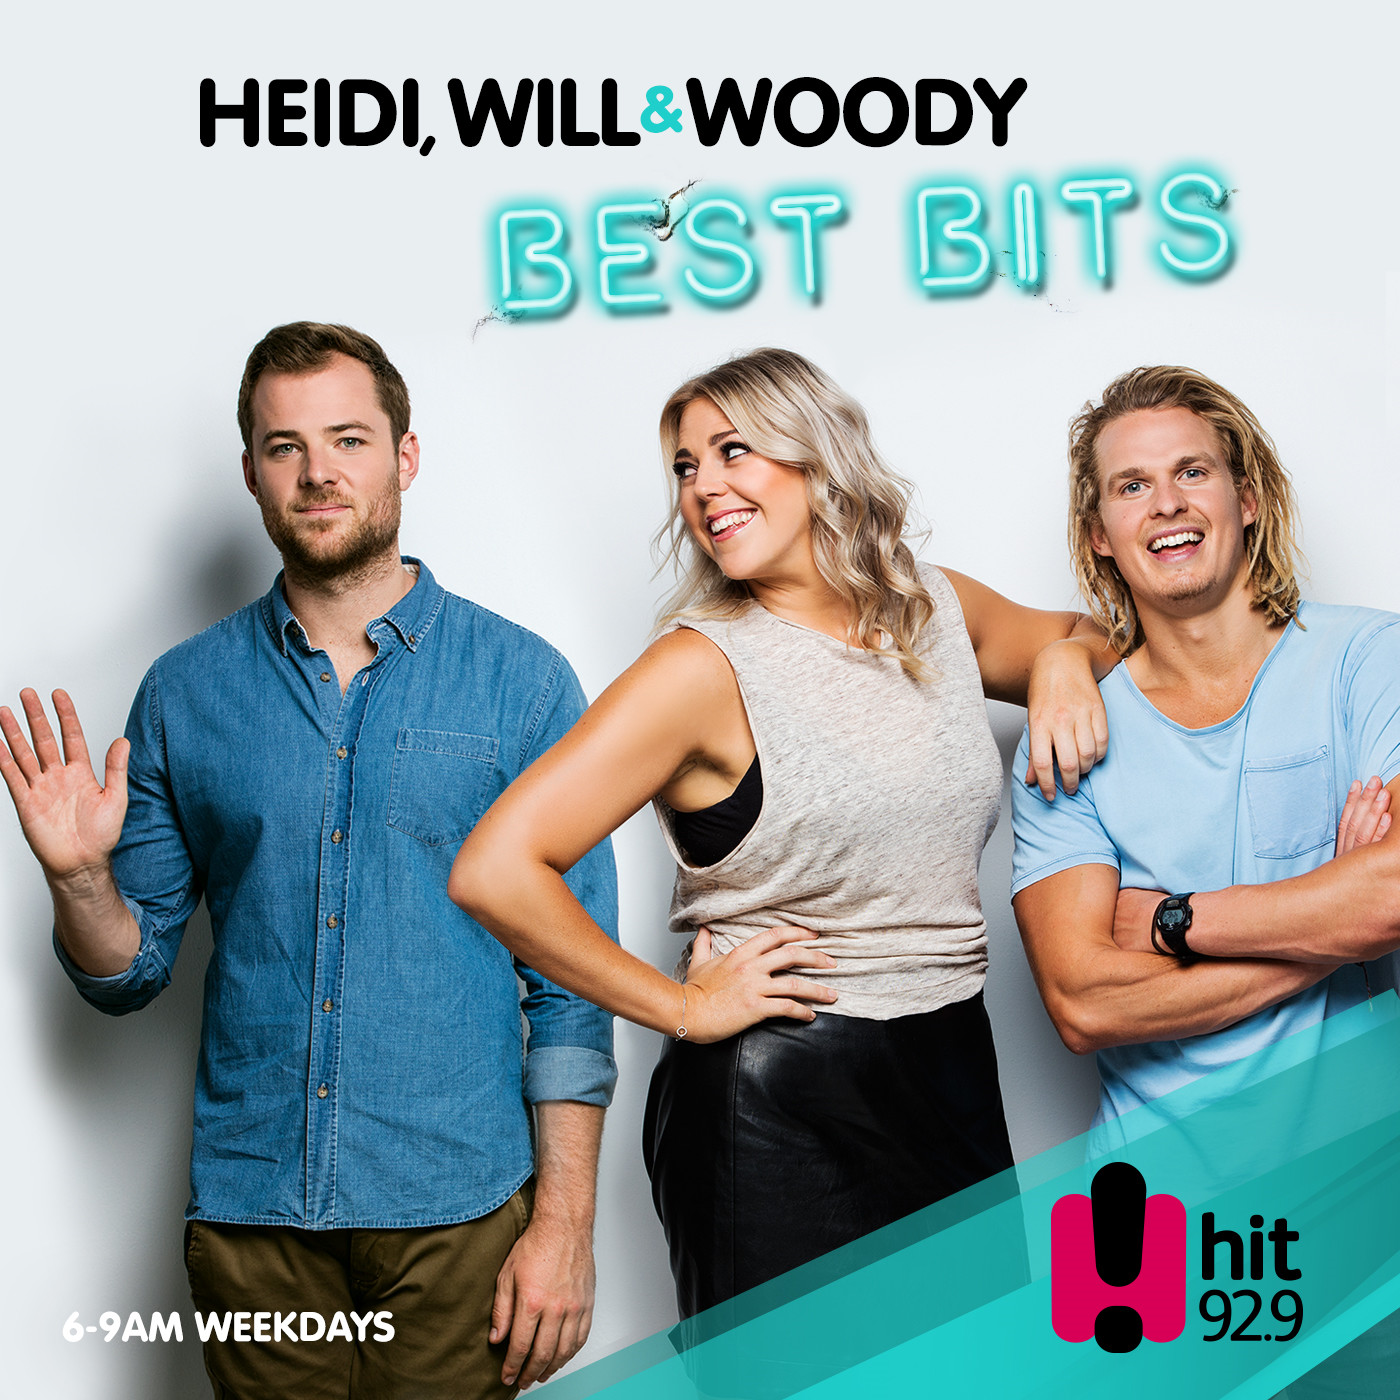 Heidi, Will and Woody: Best Bits